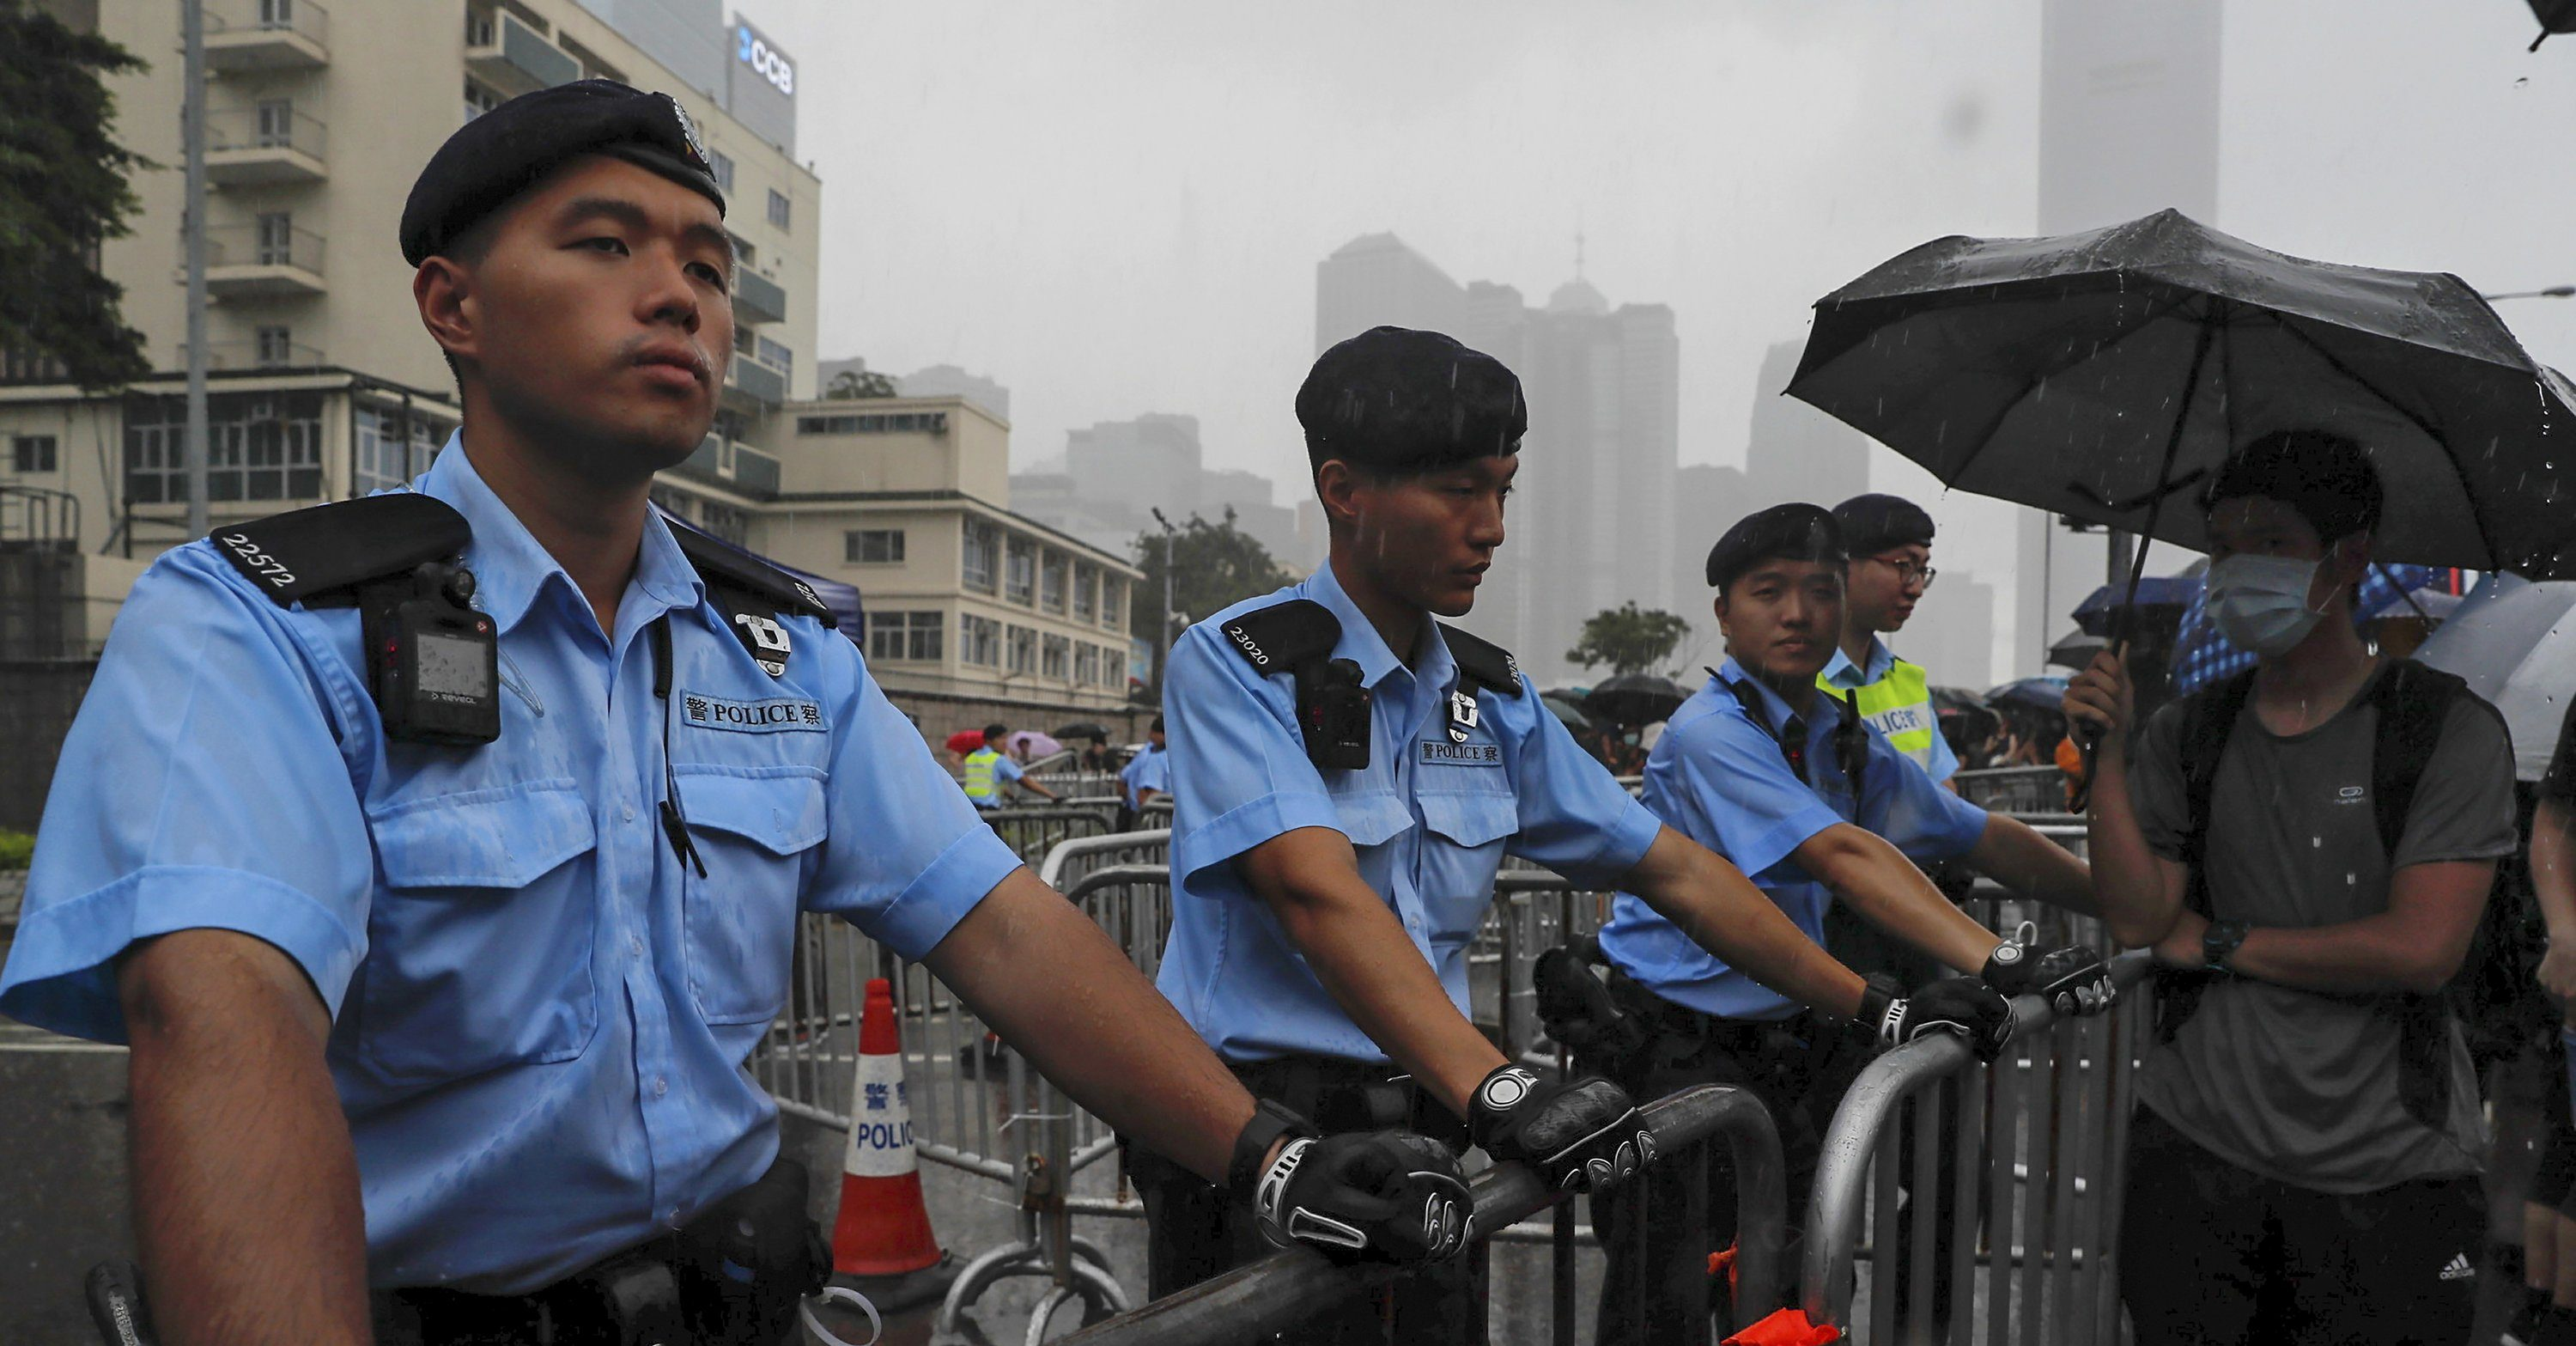 Policemen stand guard in the rain as protesters gather near the Legislative Council continuing protest against the unpopular extradition bill in Hong Kong Monday